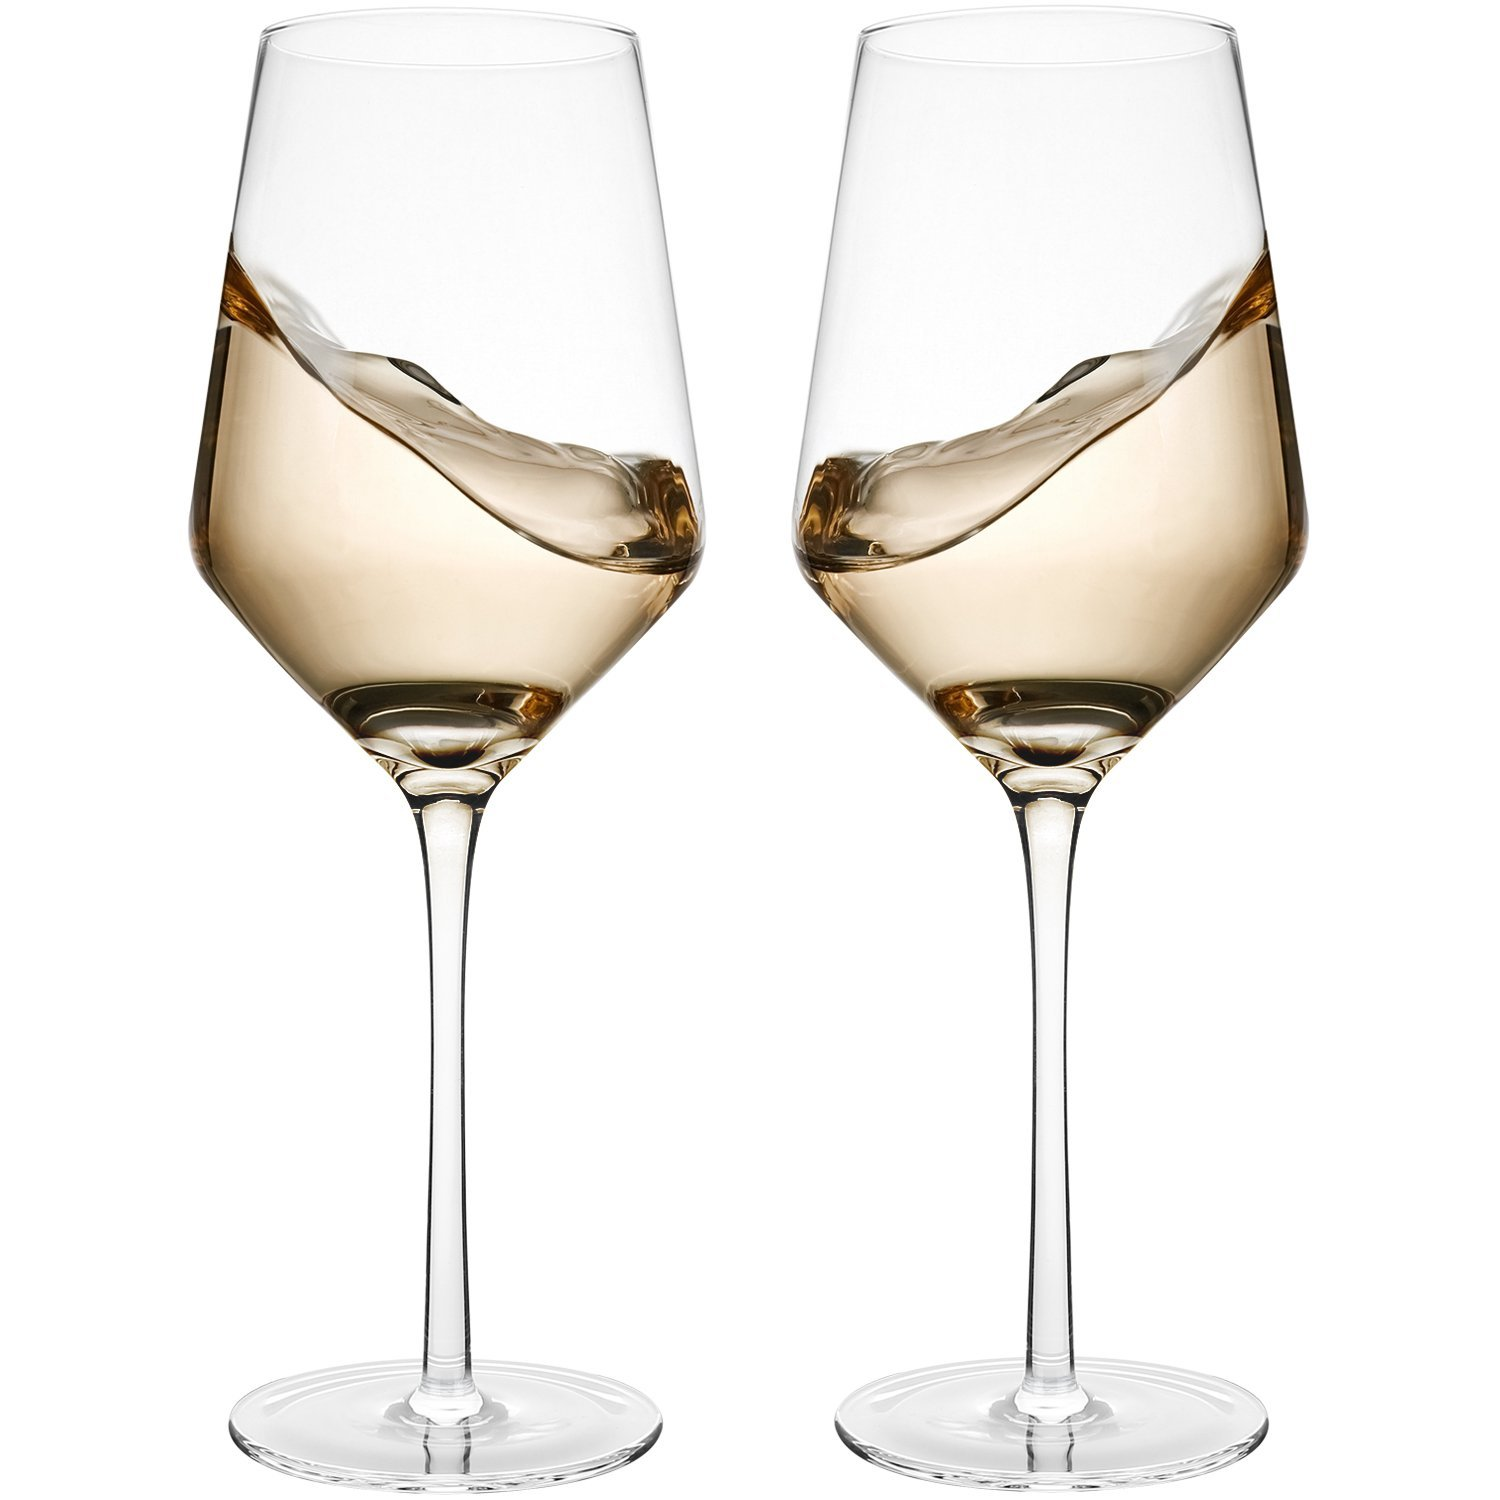 Hand Blown Crystal Wine Glasses - Bella Vino Standard Red / White Wine Glass Made from 100% Lead Free Premium Crystal Glass, 15.5 Oz, 9.1, Perfect for Any Occasion, Great Gift, Set of 2, Clear 9.1 BV-V-1